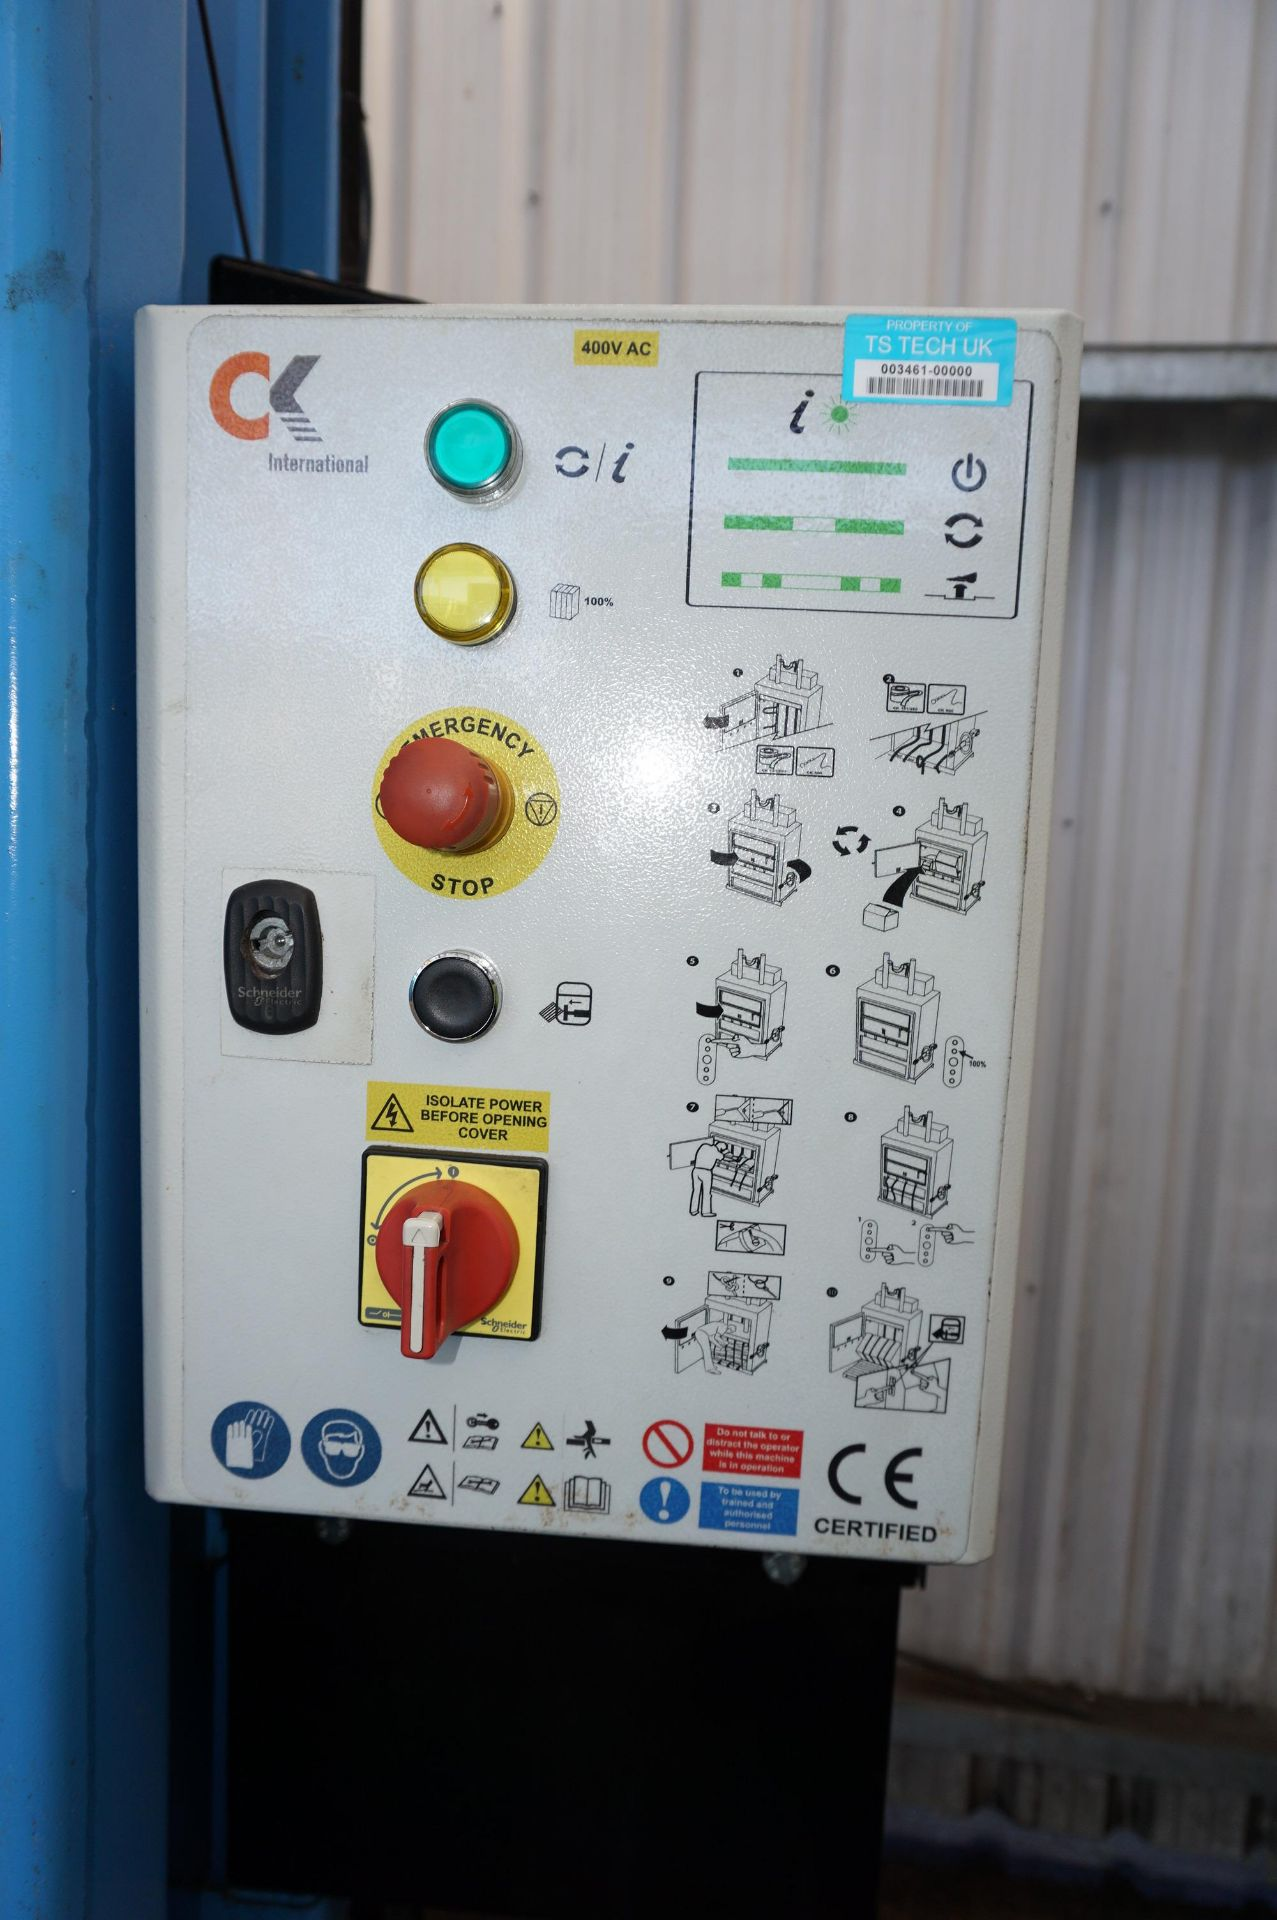 FuturFirst CK500WLUD hydraulic general waste compactor with CK international control unit - Image 3 of 5